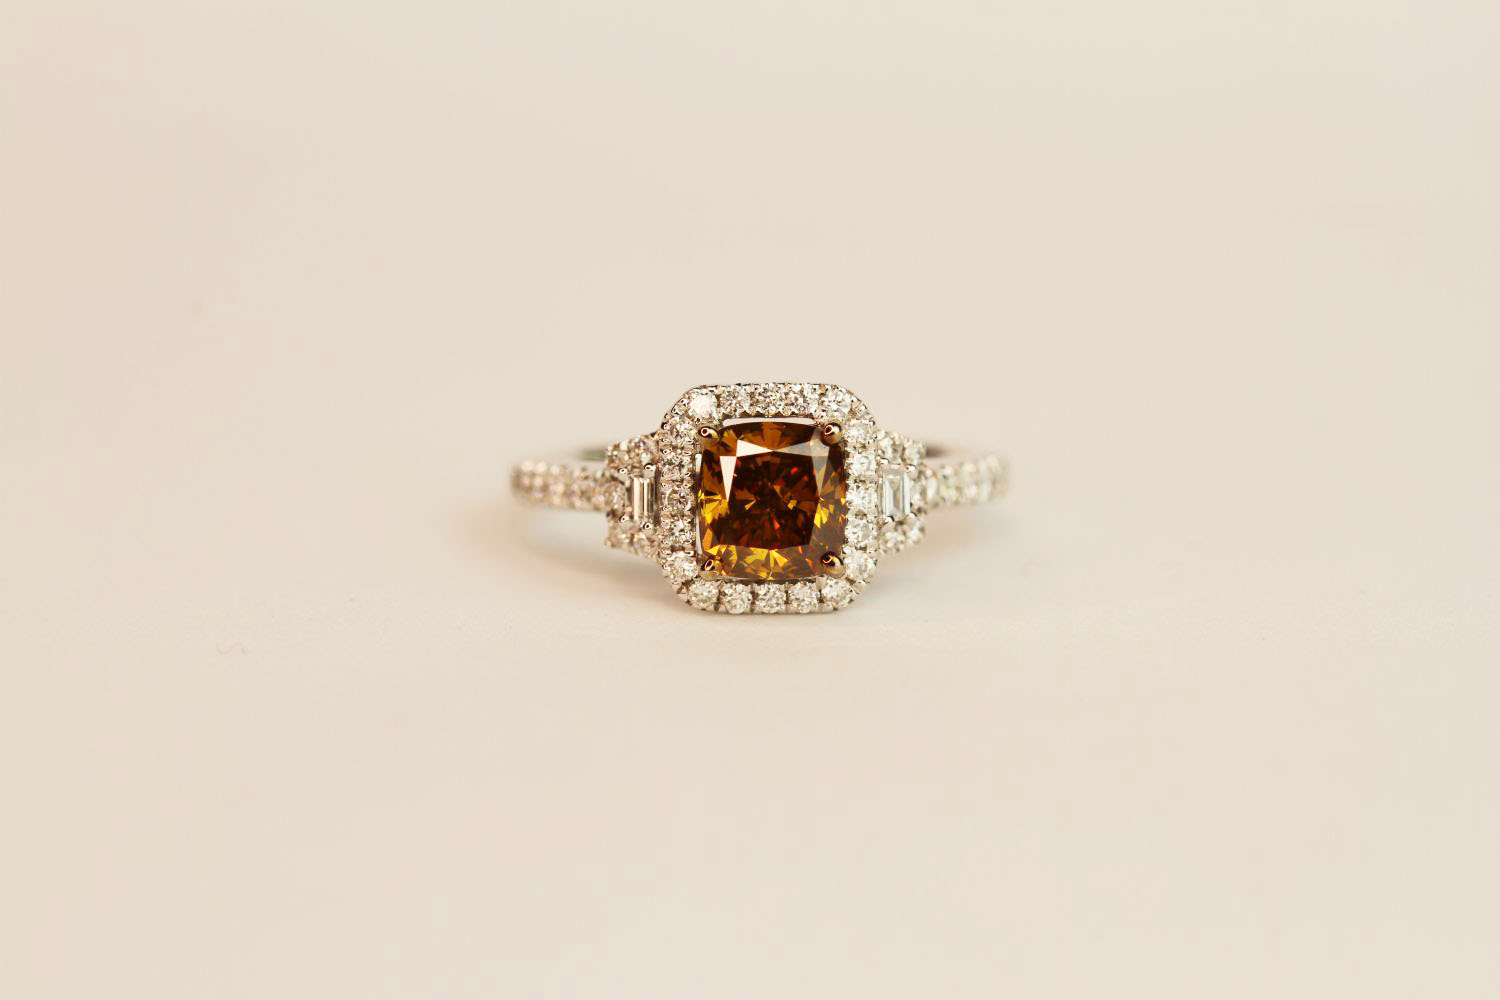 18ct white gold fancy brown cushion-cut diamond ring with diamond halo and shoulders. Fancy